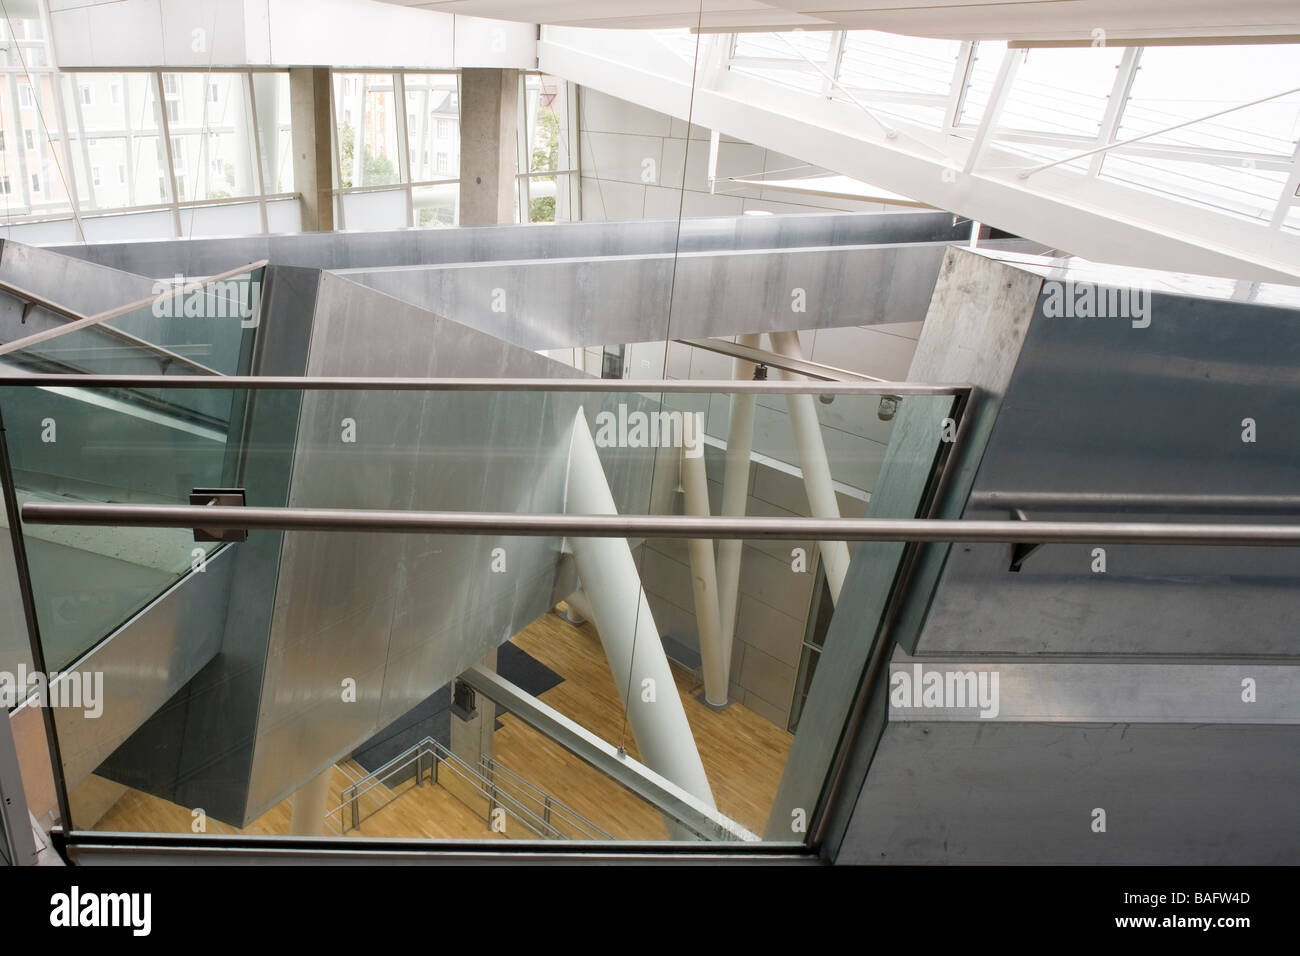 Academia of Fine Arts, Munich, Germany, Coop Himmelb(l)au, Academia of fine arts view of the stairs from the top. - Stock Image